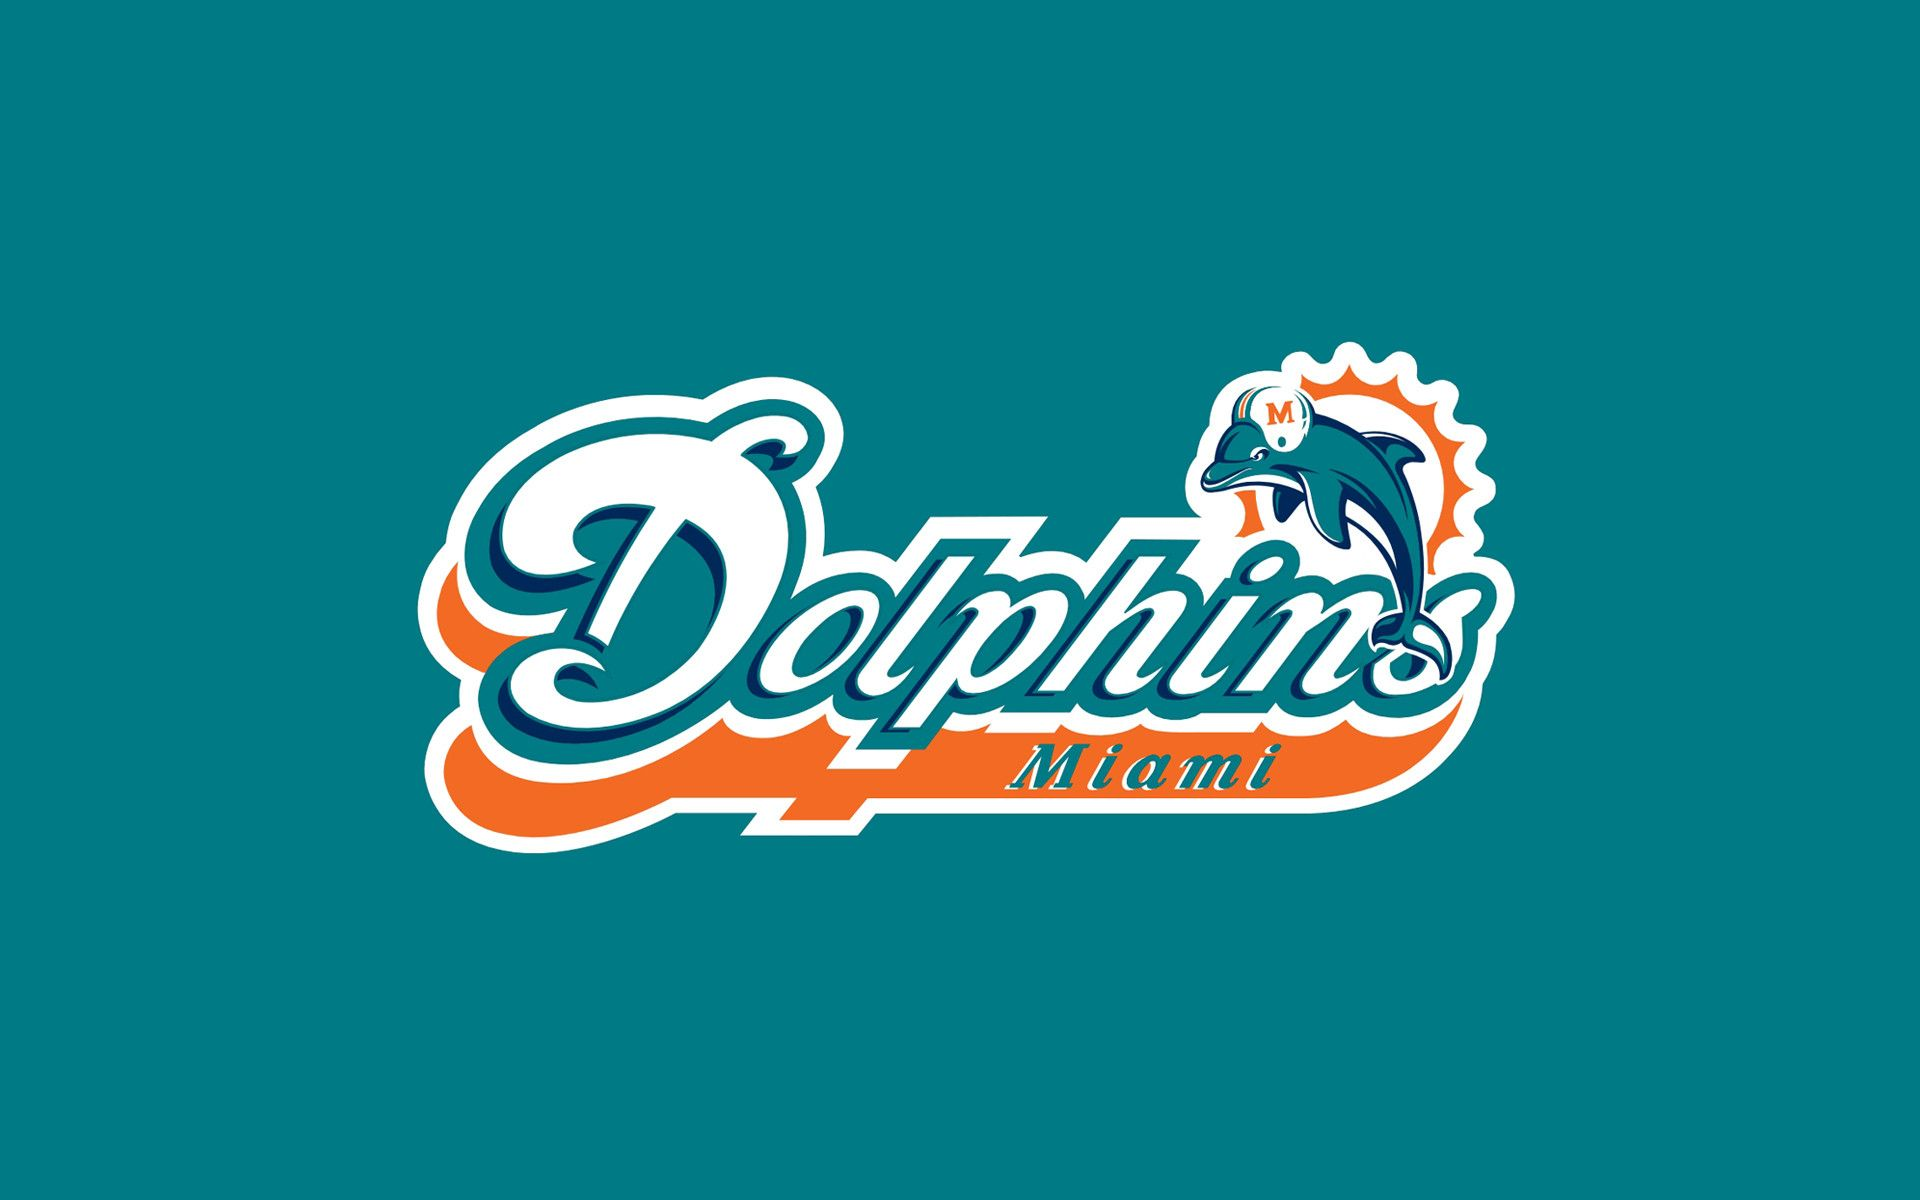 Miami Dolphin Wallpapers - Wallpaper Cave